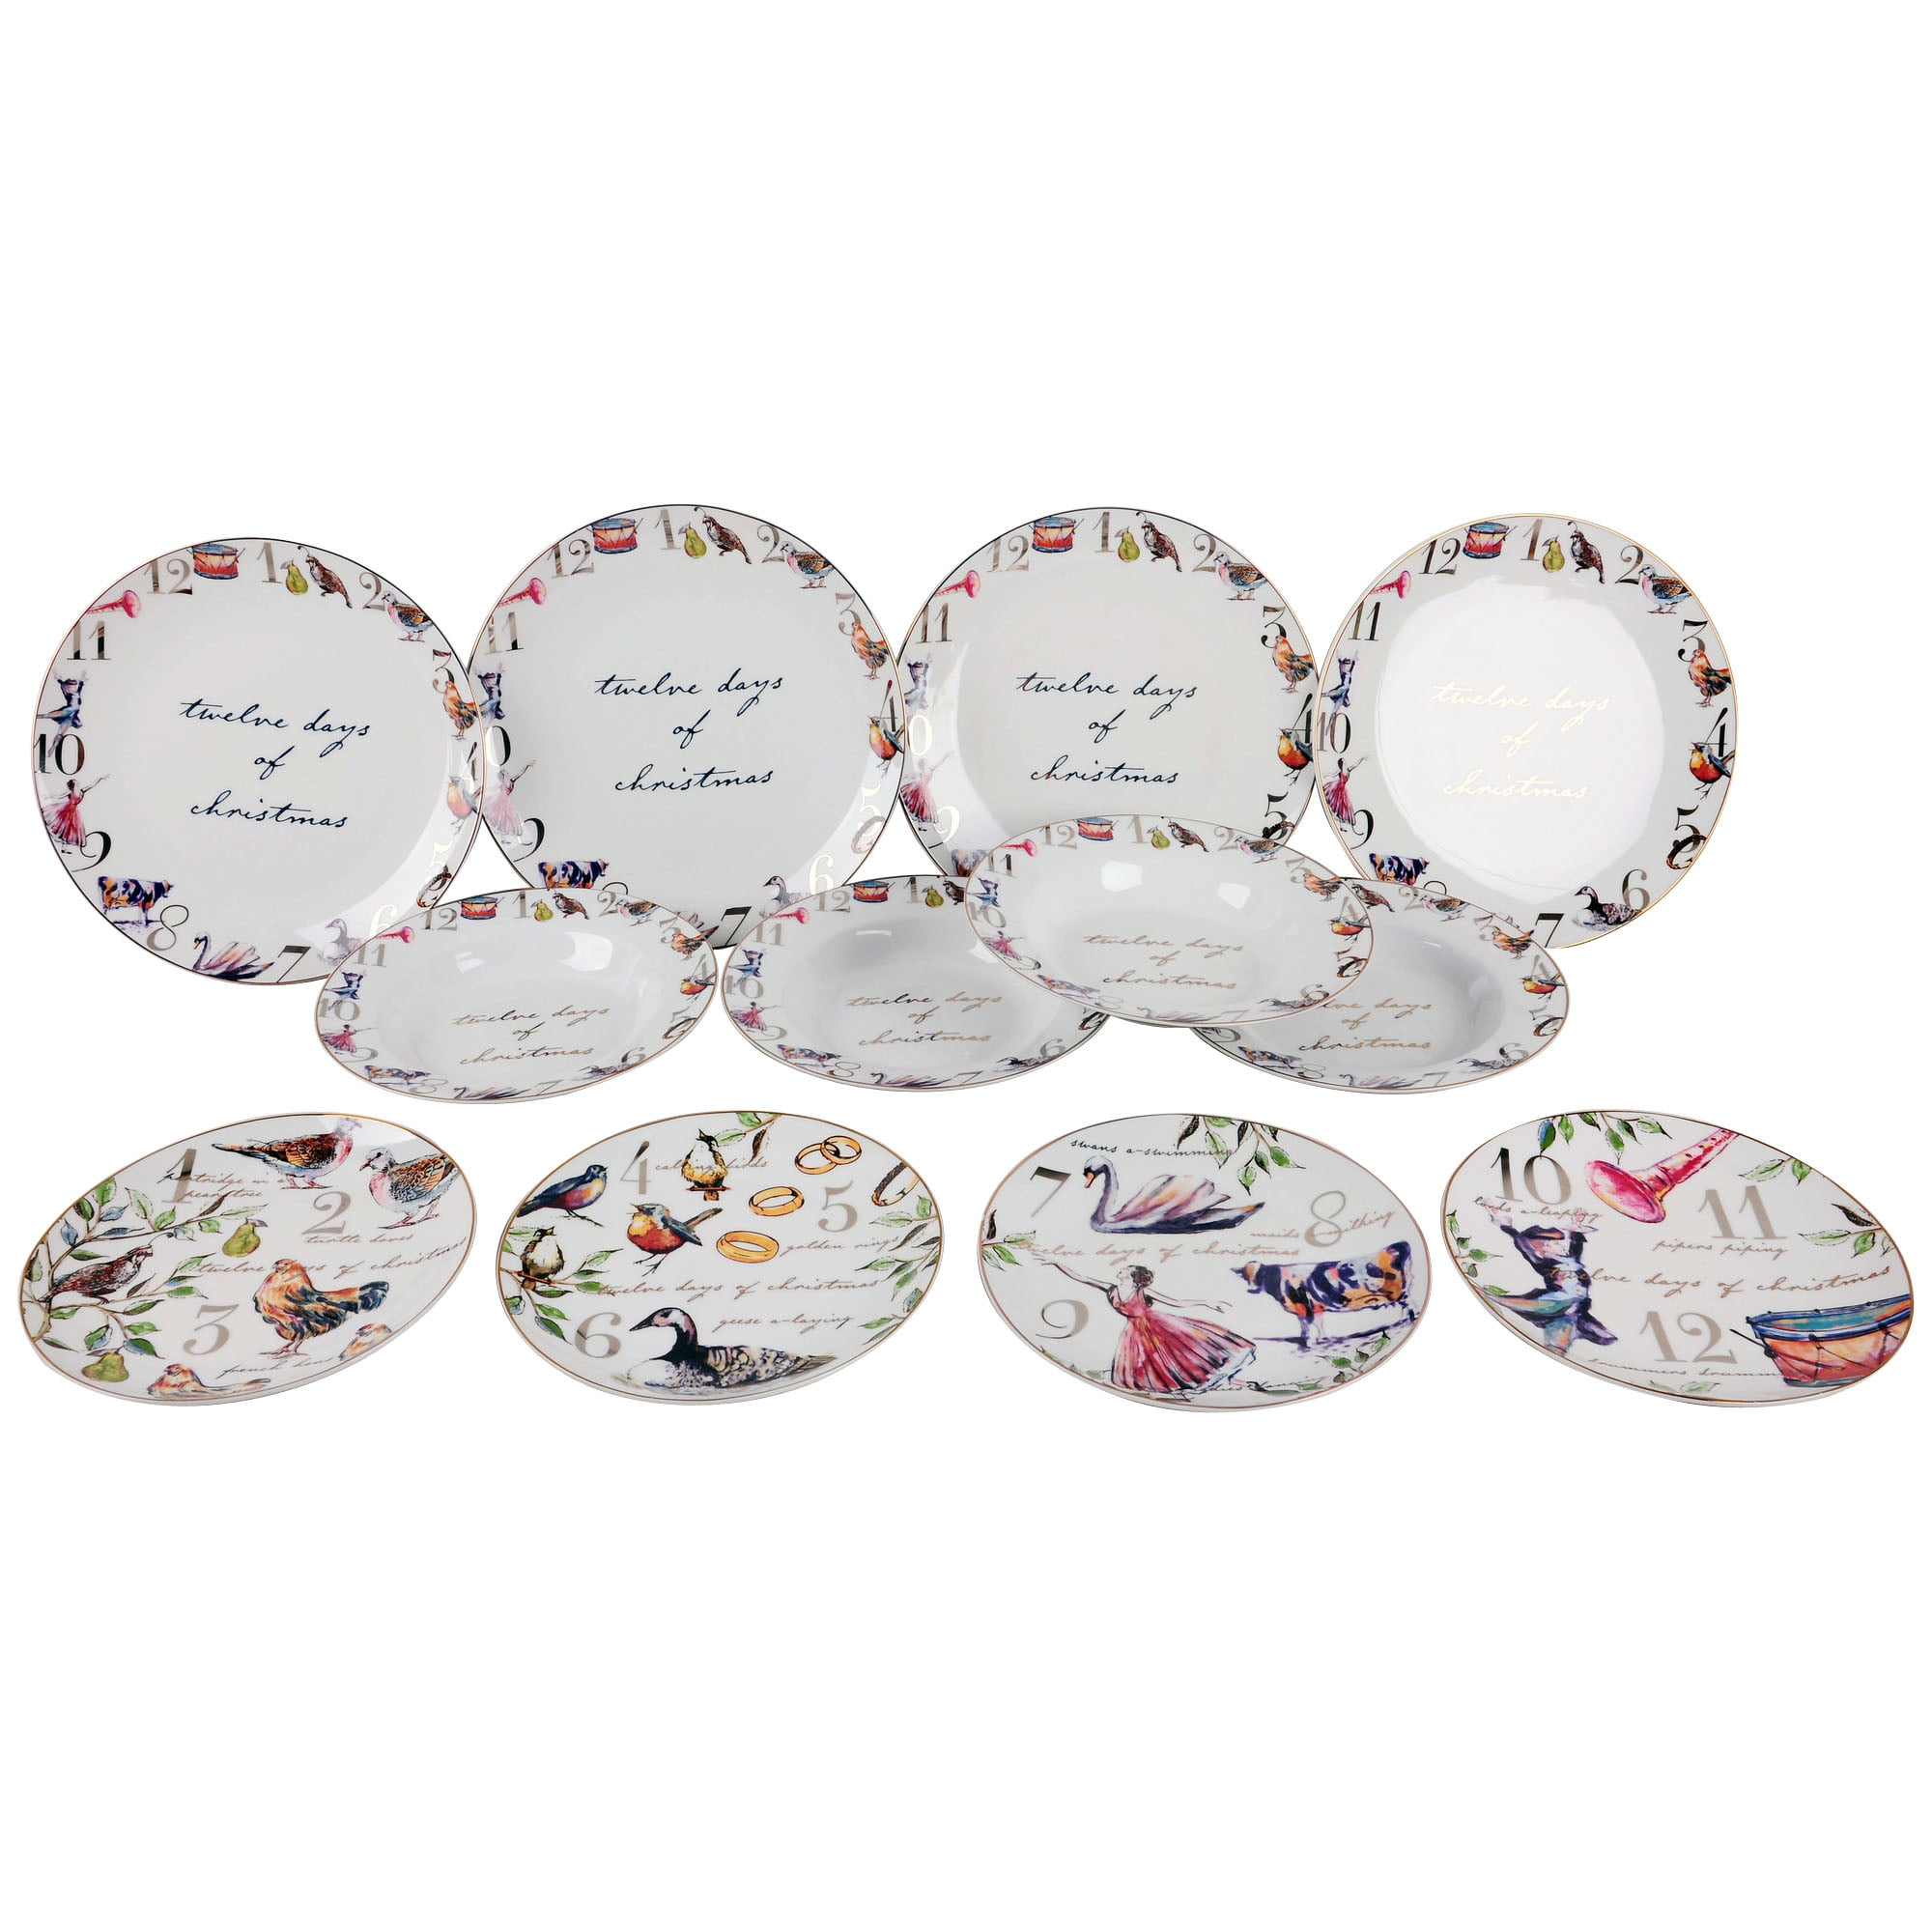 Better Homes And Gardens 12 Days Of Christmas Porcelain 12 Piece Dinnerware  Set   Walmart.com